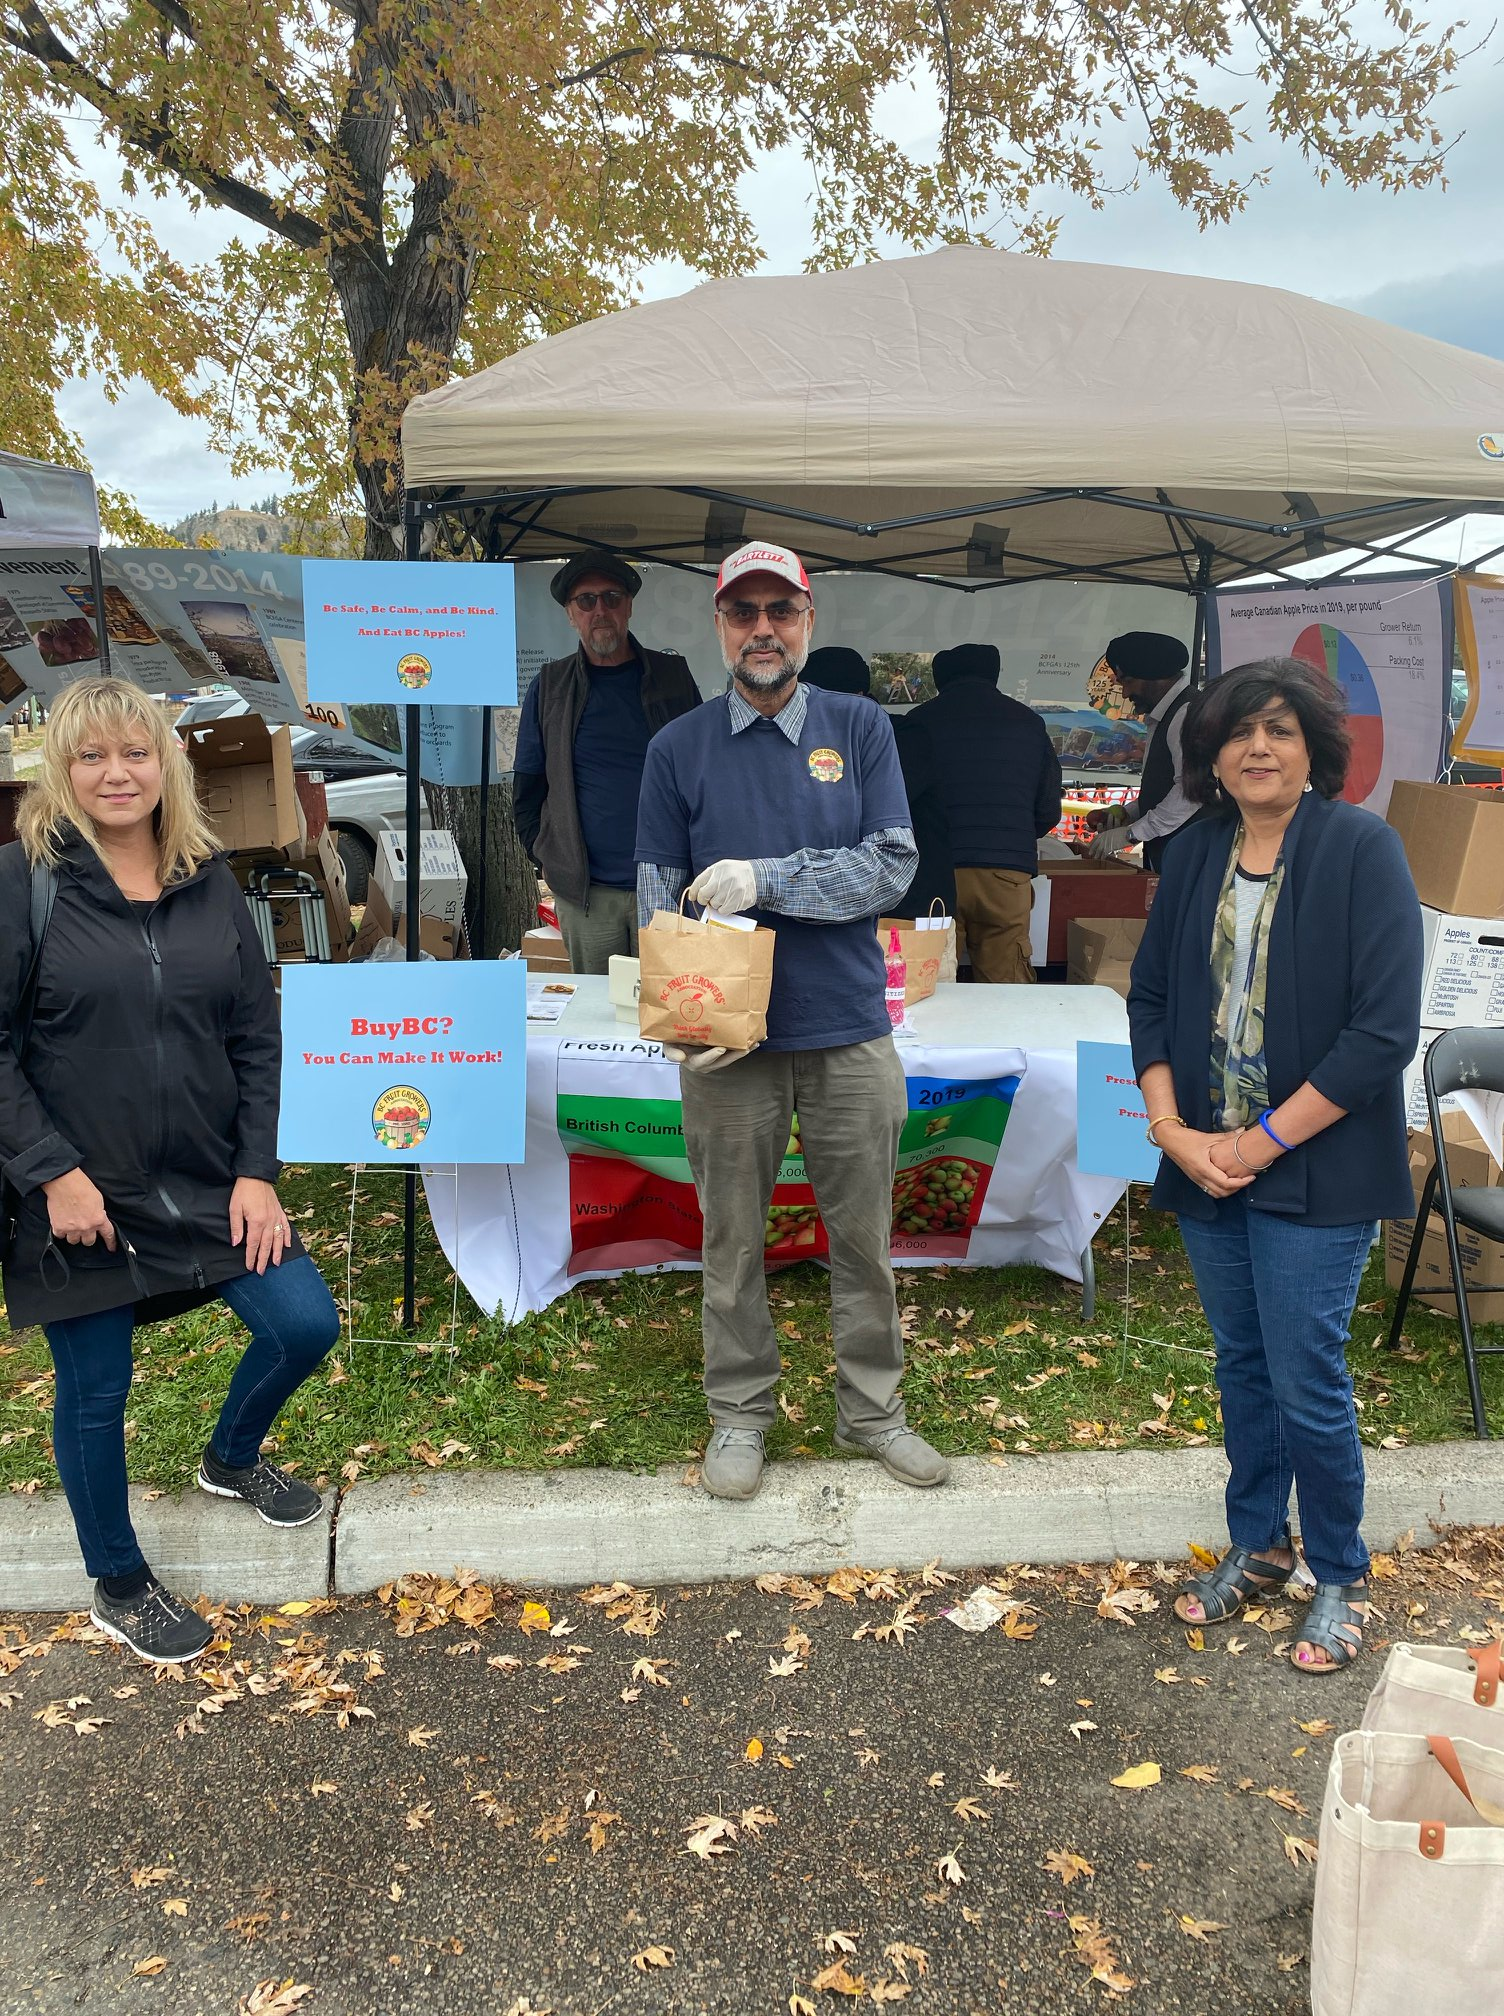 Visiting the Kelowna Farmers' and Crafters' Market